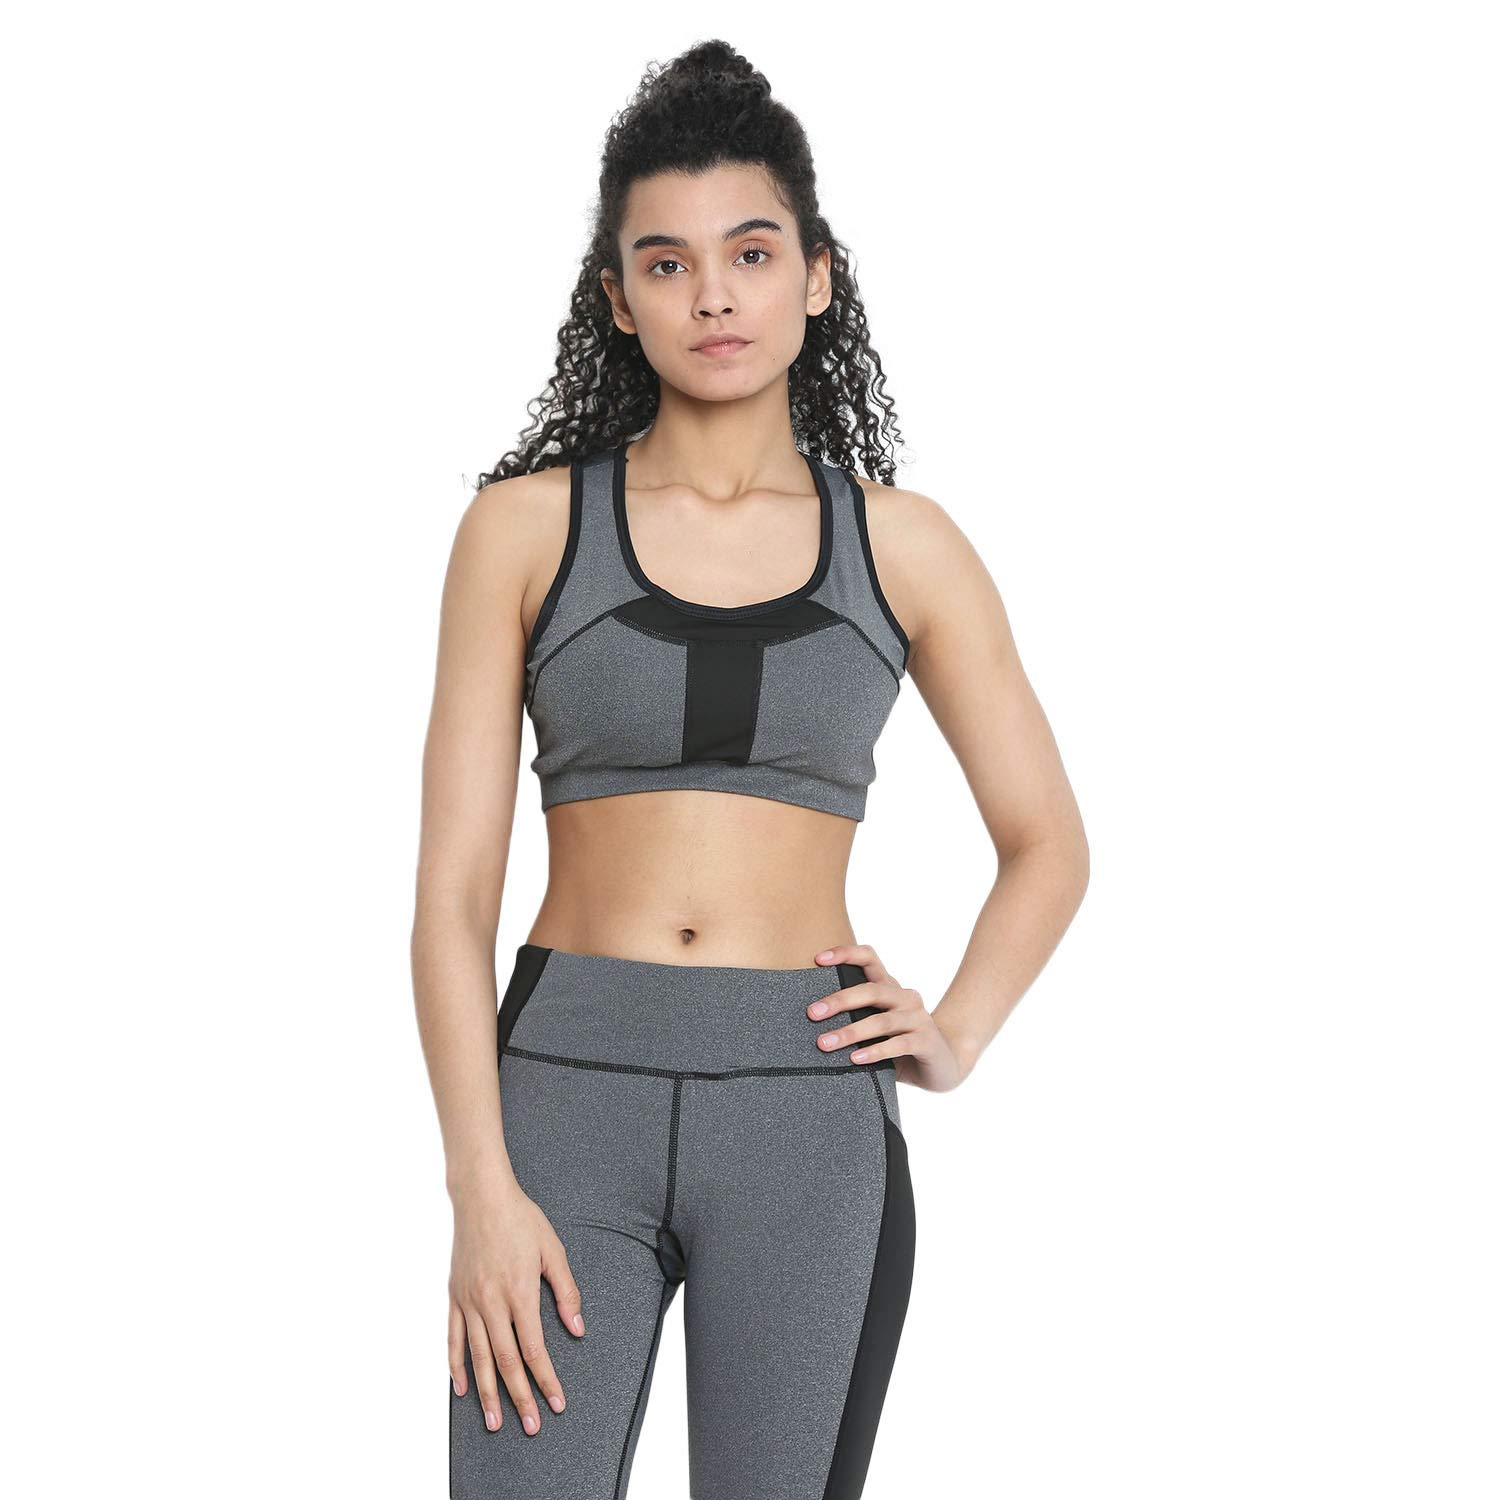 25dcb1152984a CHKOKKO Sports Bra and Yoga Pant Gym Wear Fitness Training Set for Women:  Amazon.in: Clothing & Accessories